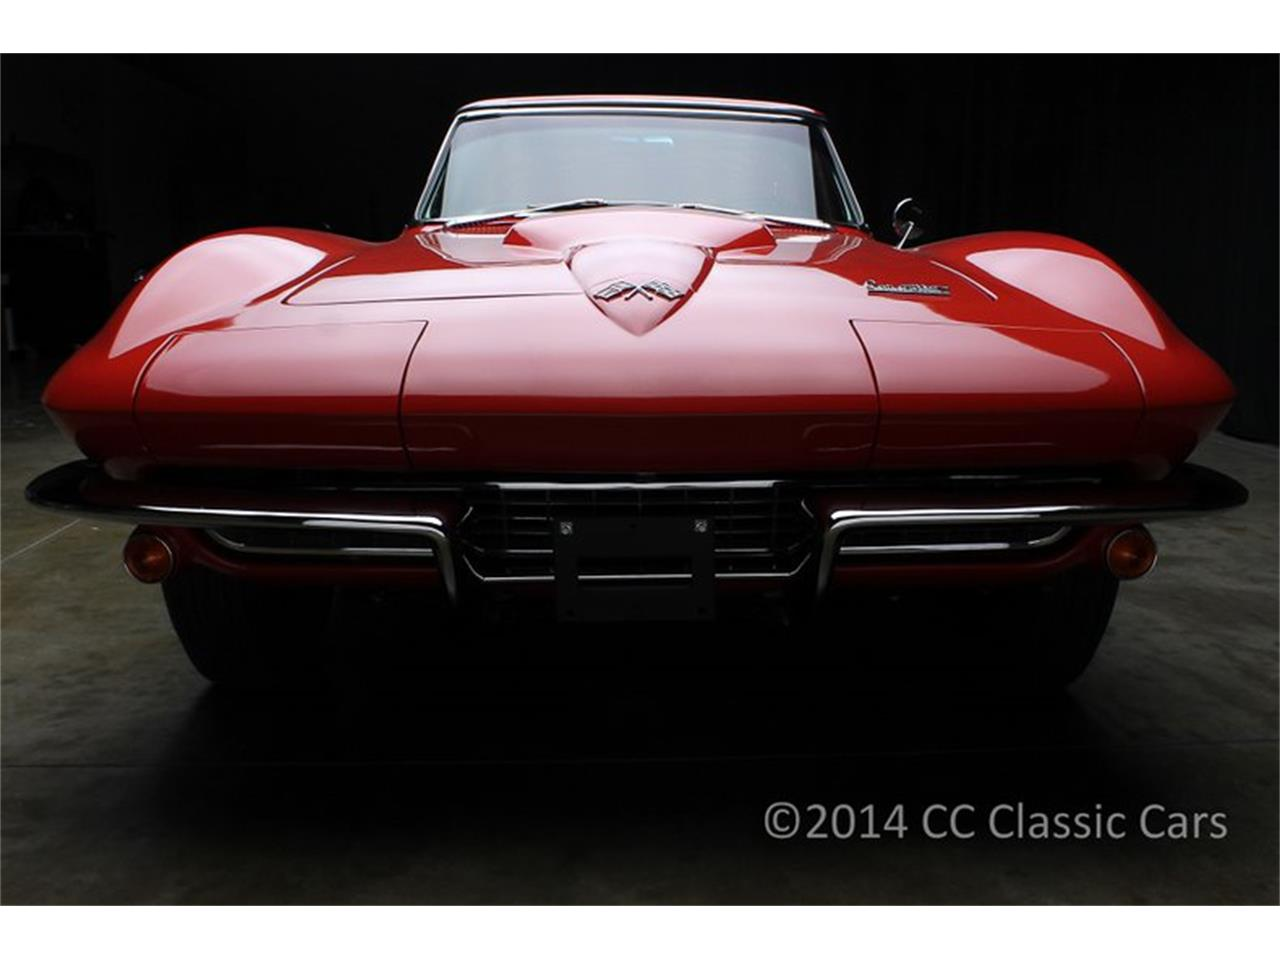 Large Picture of Classic 1966 Corvette located in West Chester Pennsylvania Auction Vehicle - HZ0A